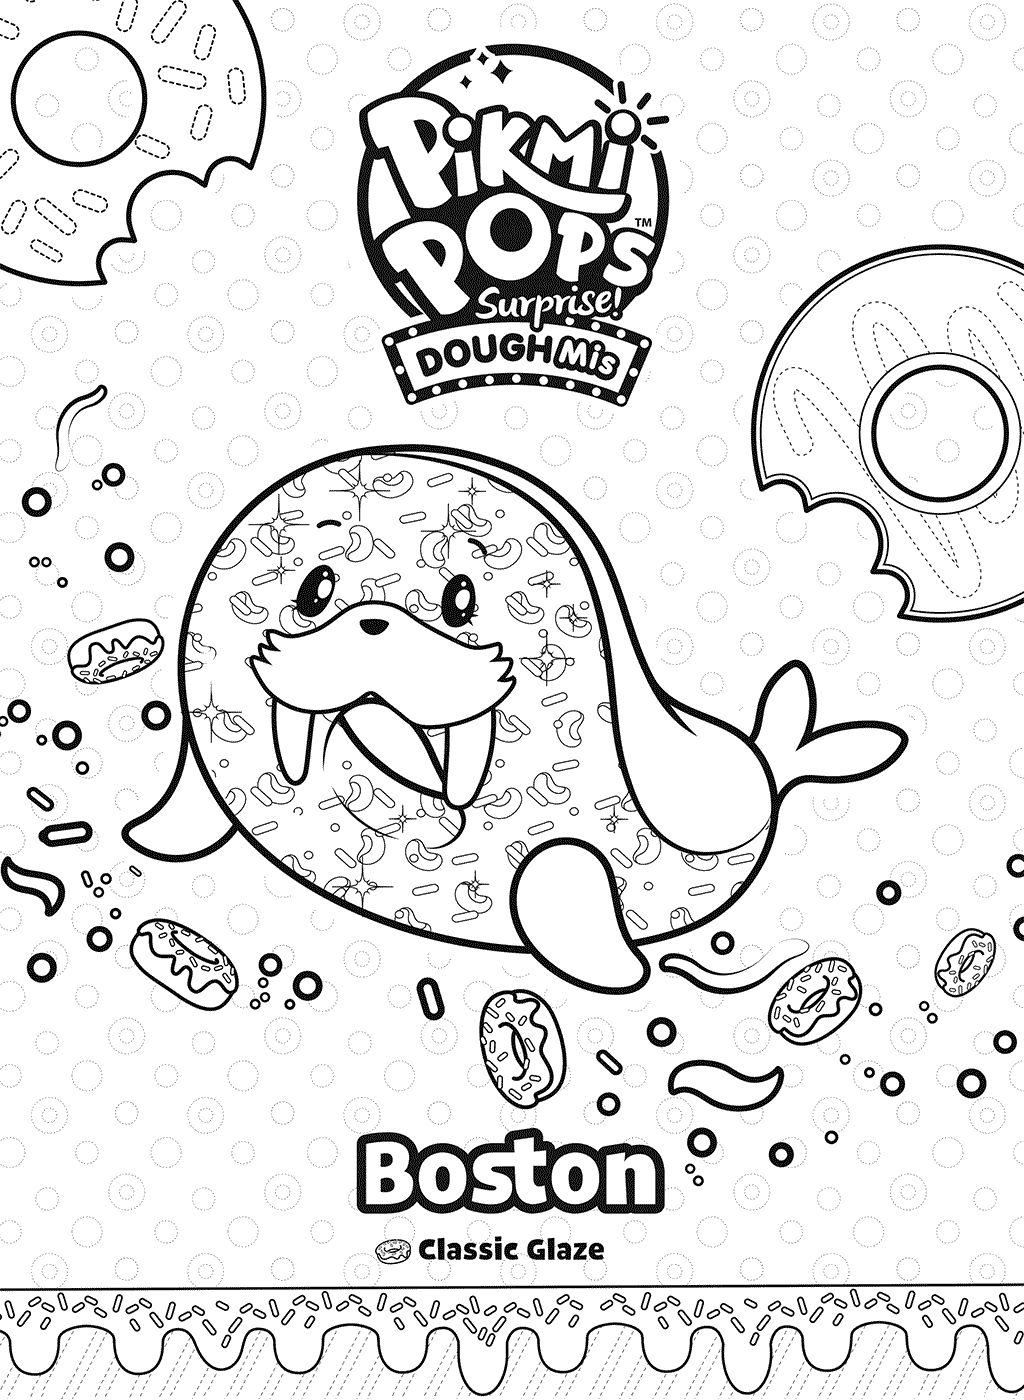 Boston Pikmi Pops Coloring Pages